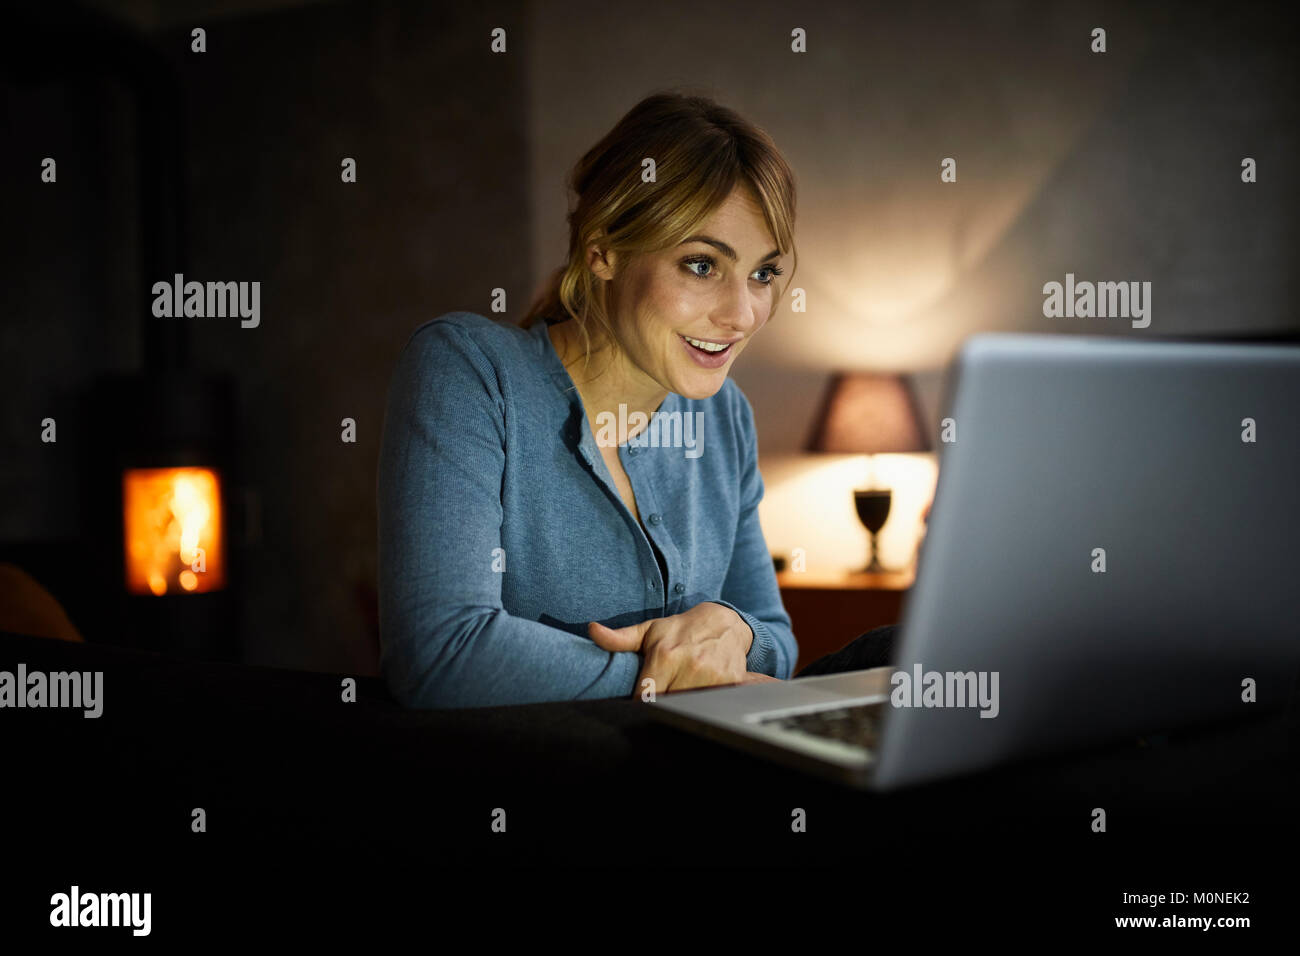 Portrait of amazed woman using laptop at home in the evening - Stock Image